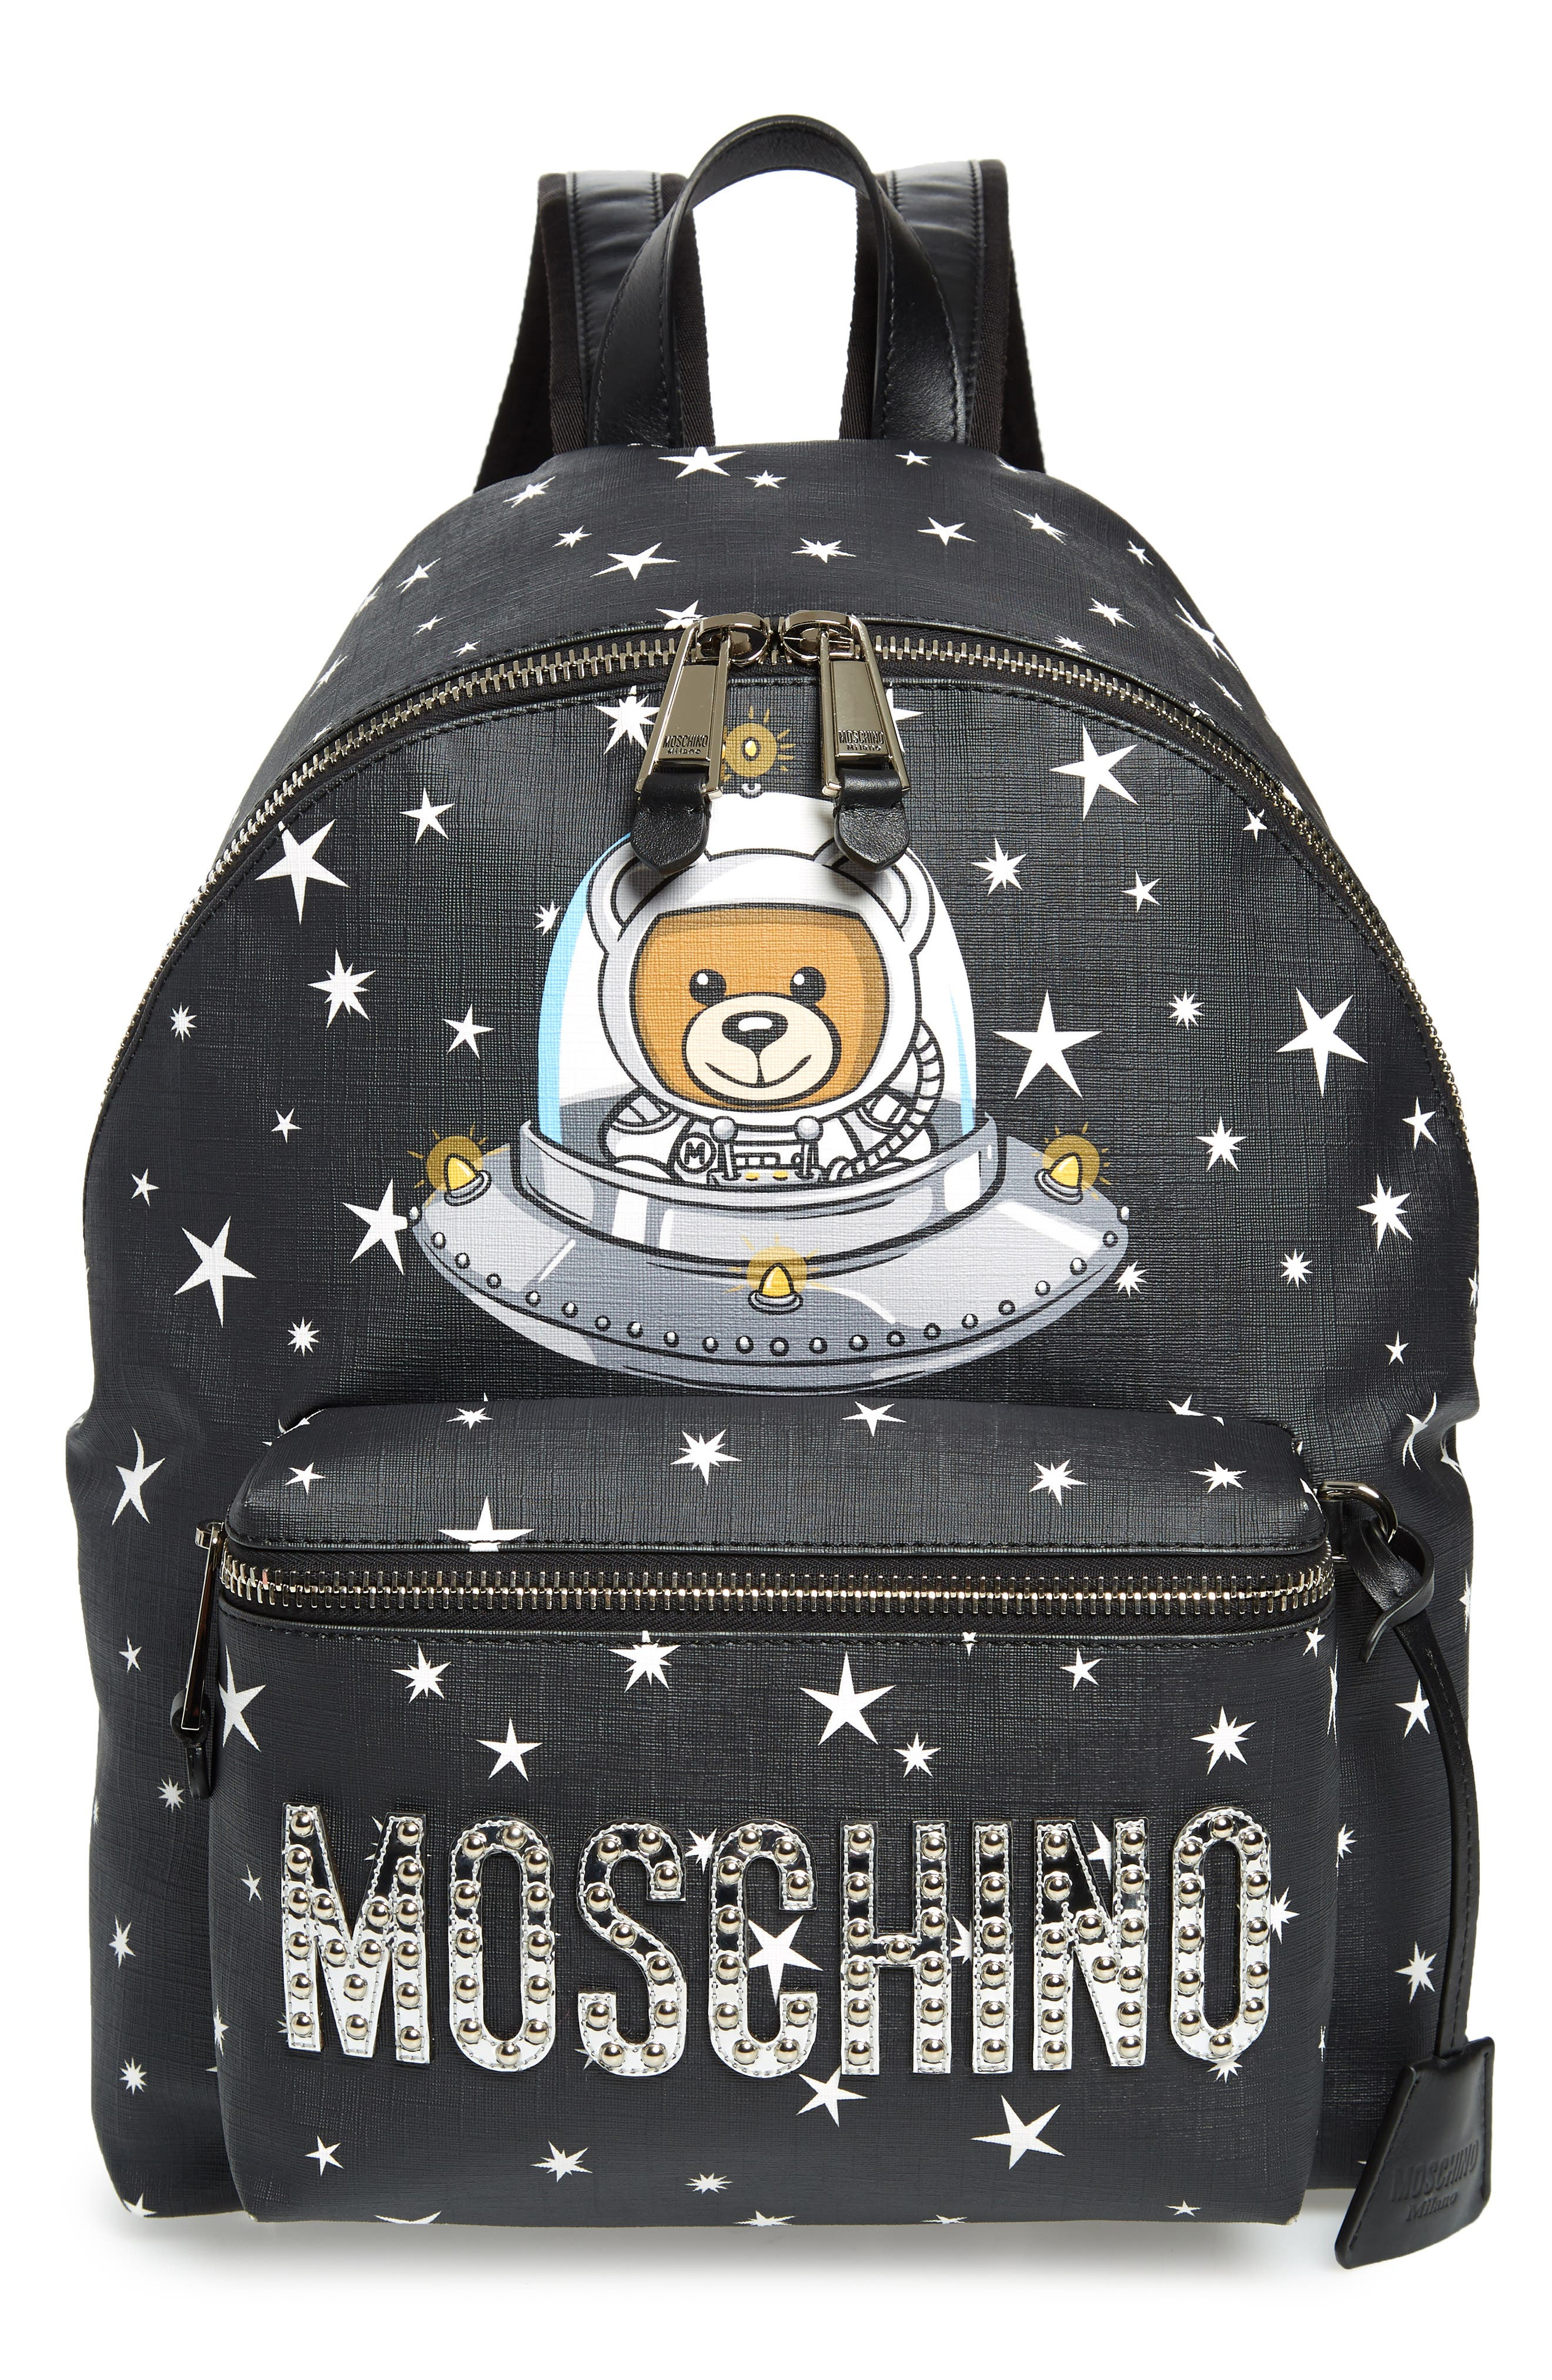 UFO Teddy Bear Faux Leather Backpack,                             Main thumbnail 1, color,                             001